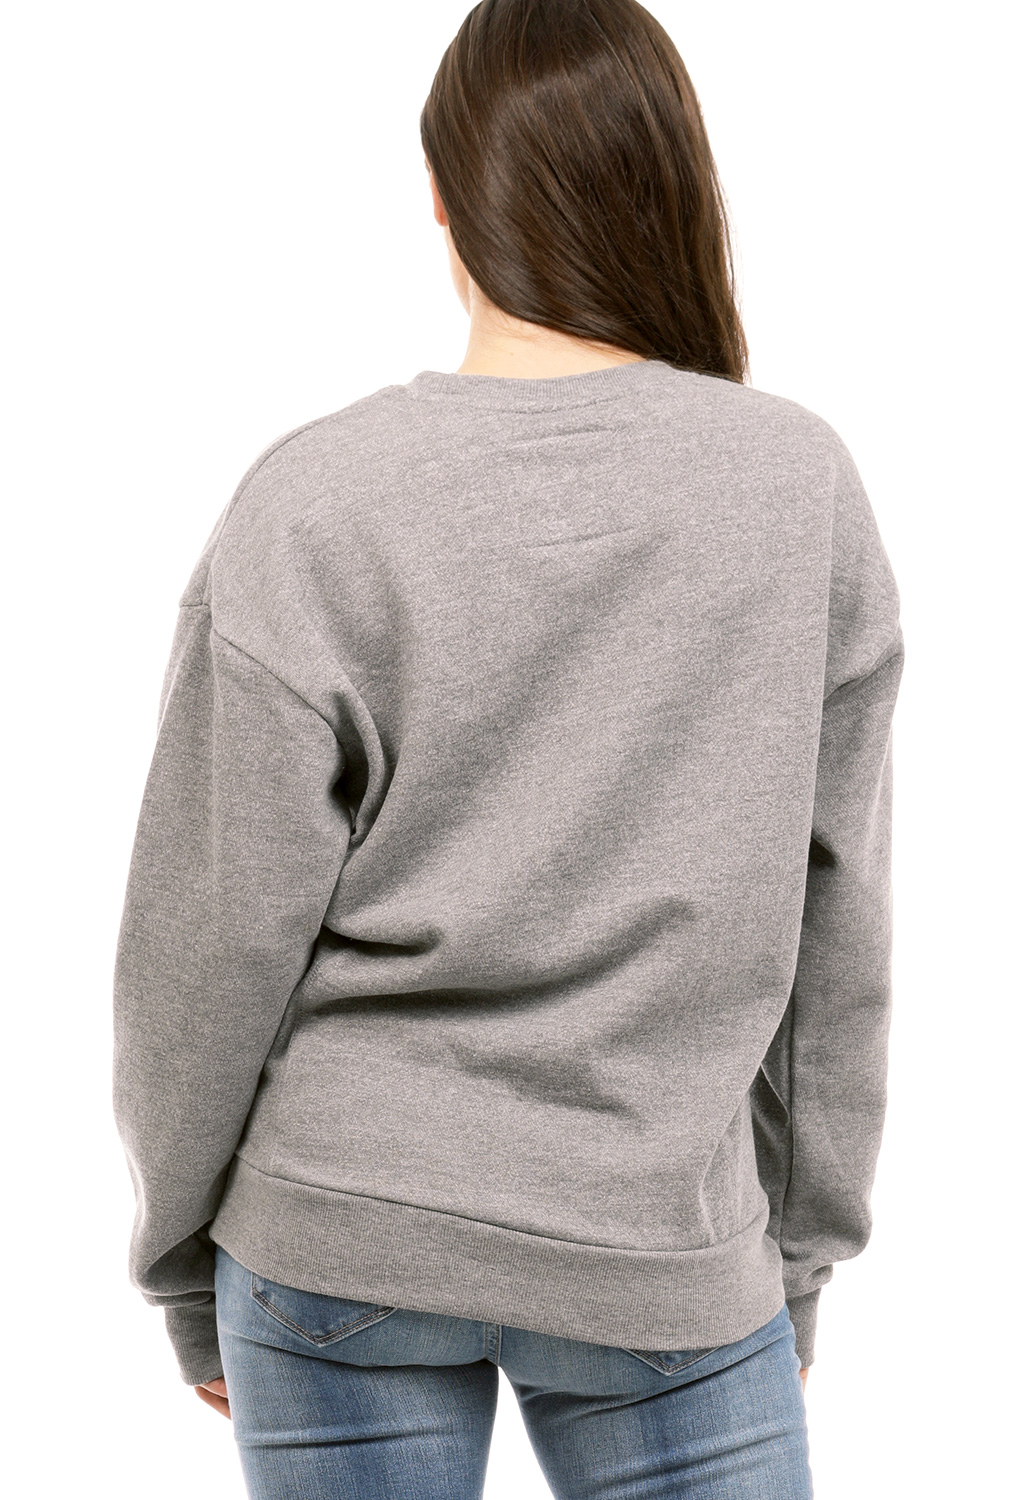 Activewear Sweater